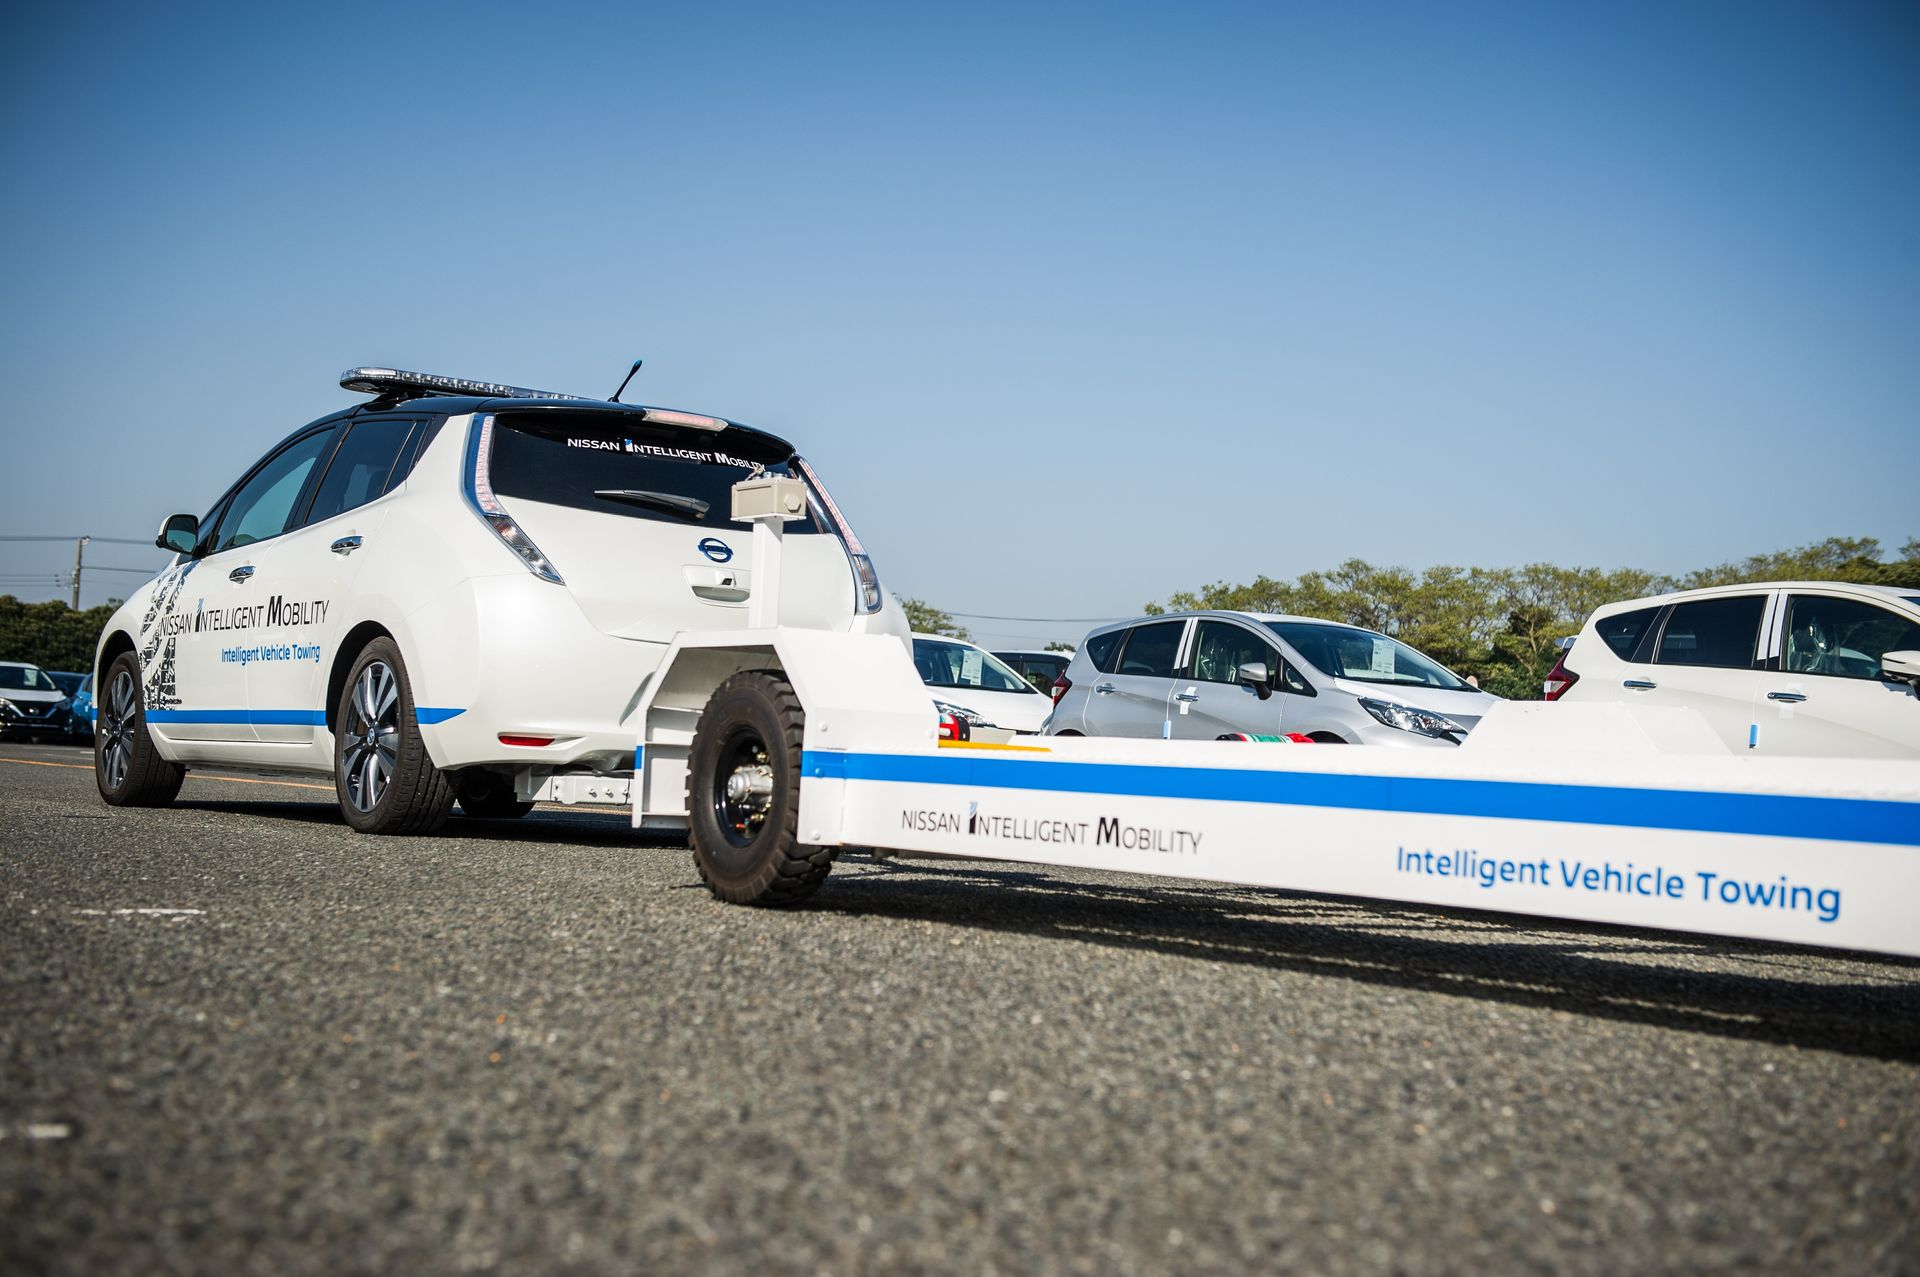 Nissan Intelligent Vehicle Towing